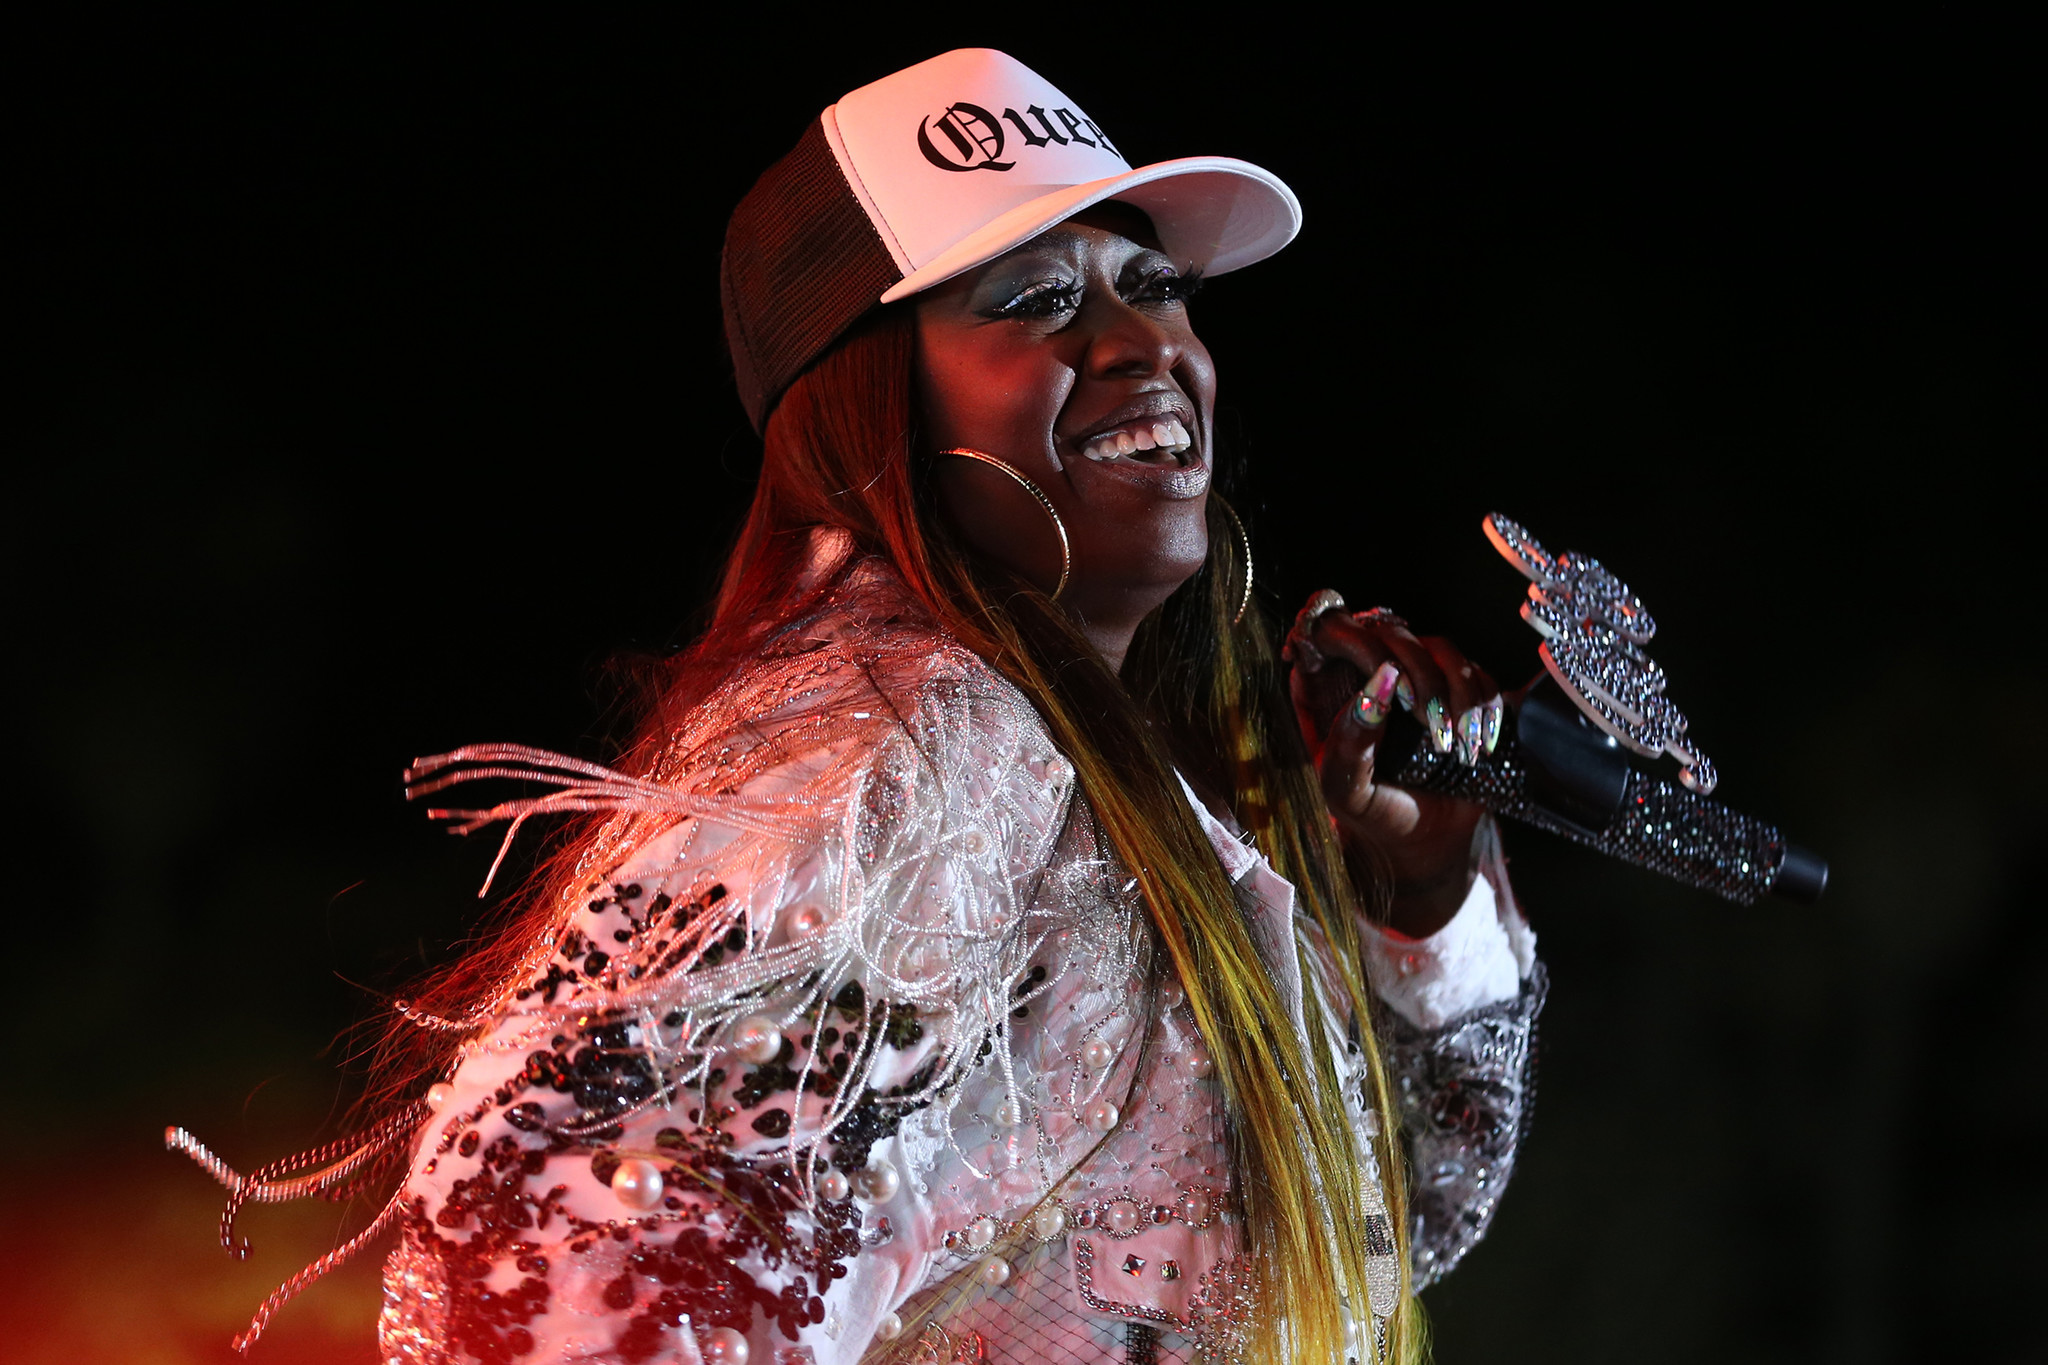 Missy Elliott's headlining slot at FYF was the rapper's first full-length performance in the U.S. in about a decade.